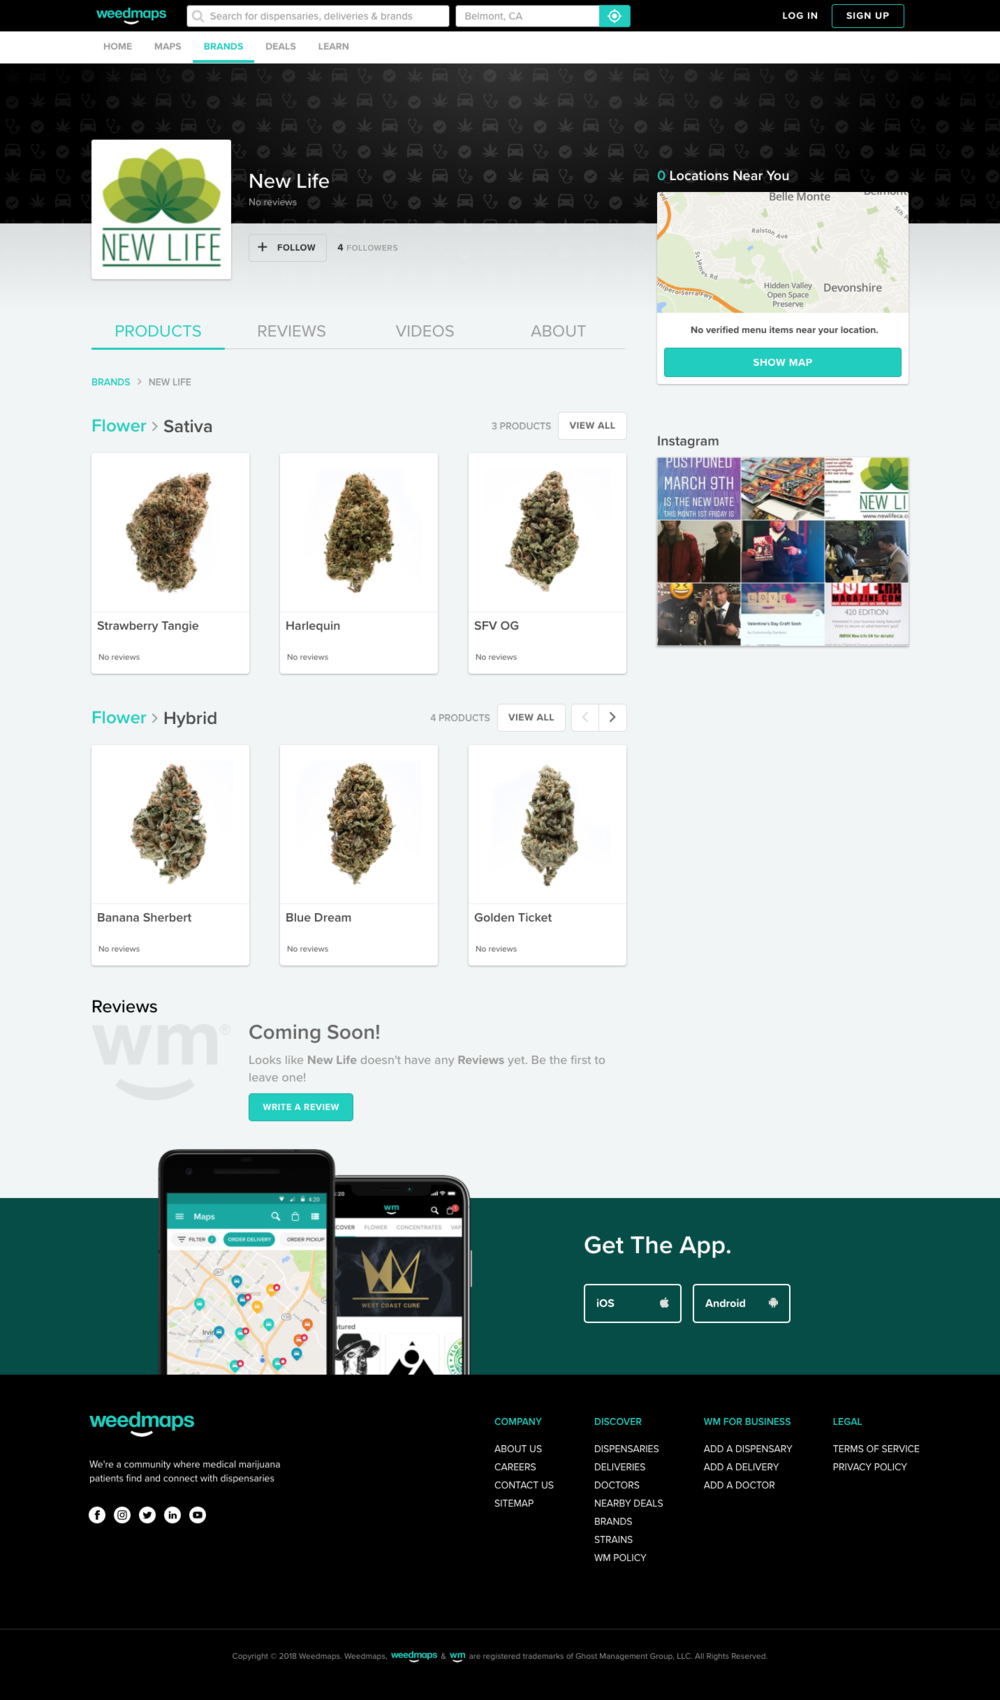 screencapture-weedmaps-brands-new-life-1519860595046.png